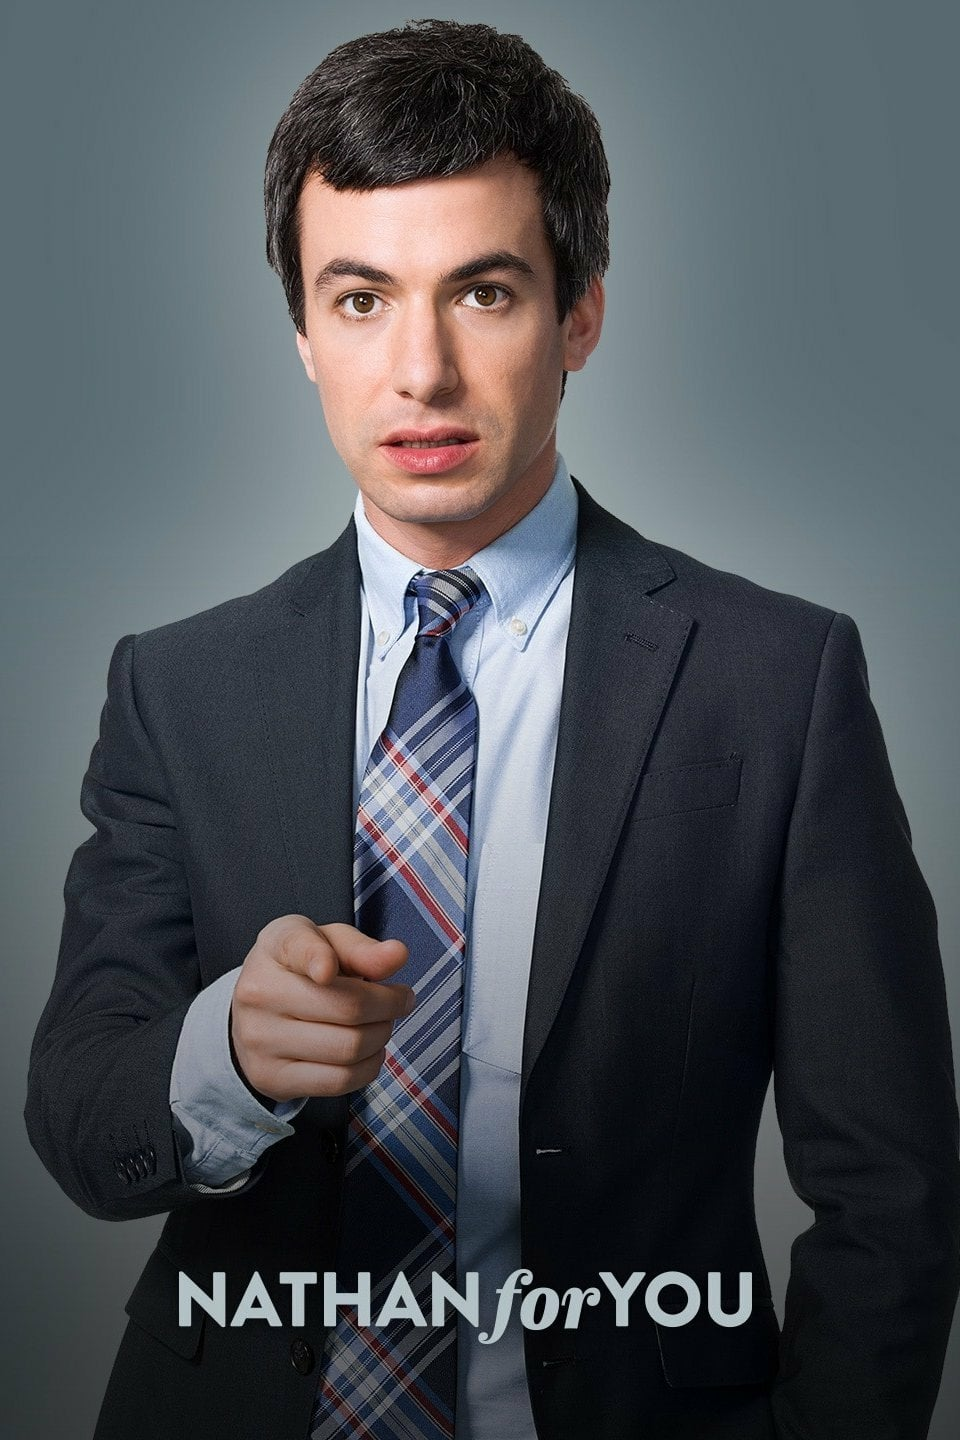 Nathan for You' />